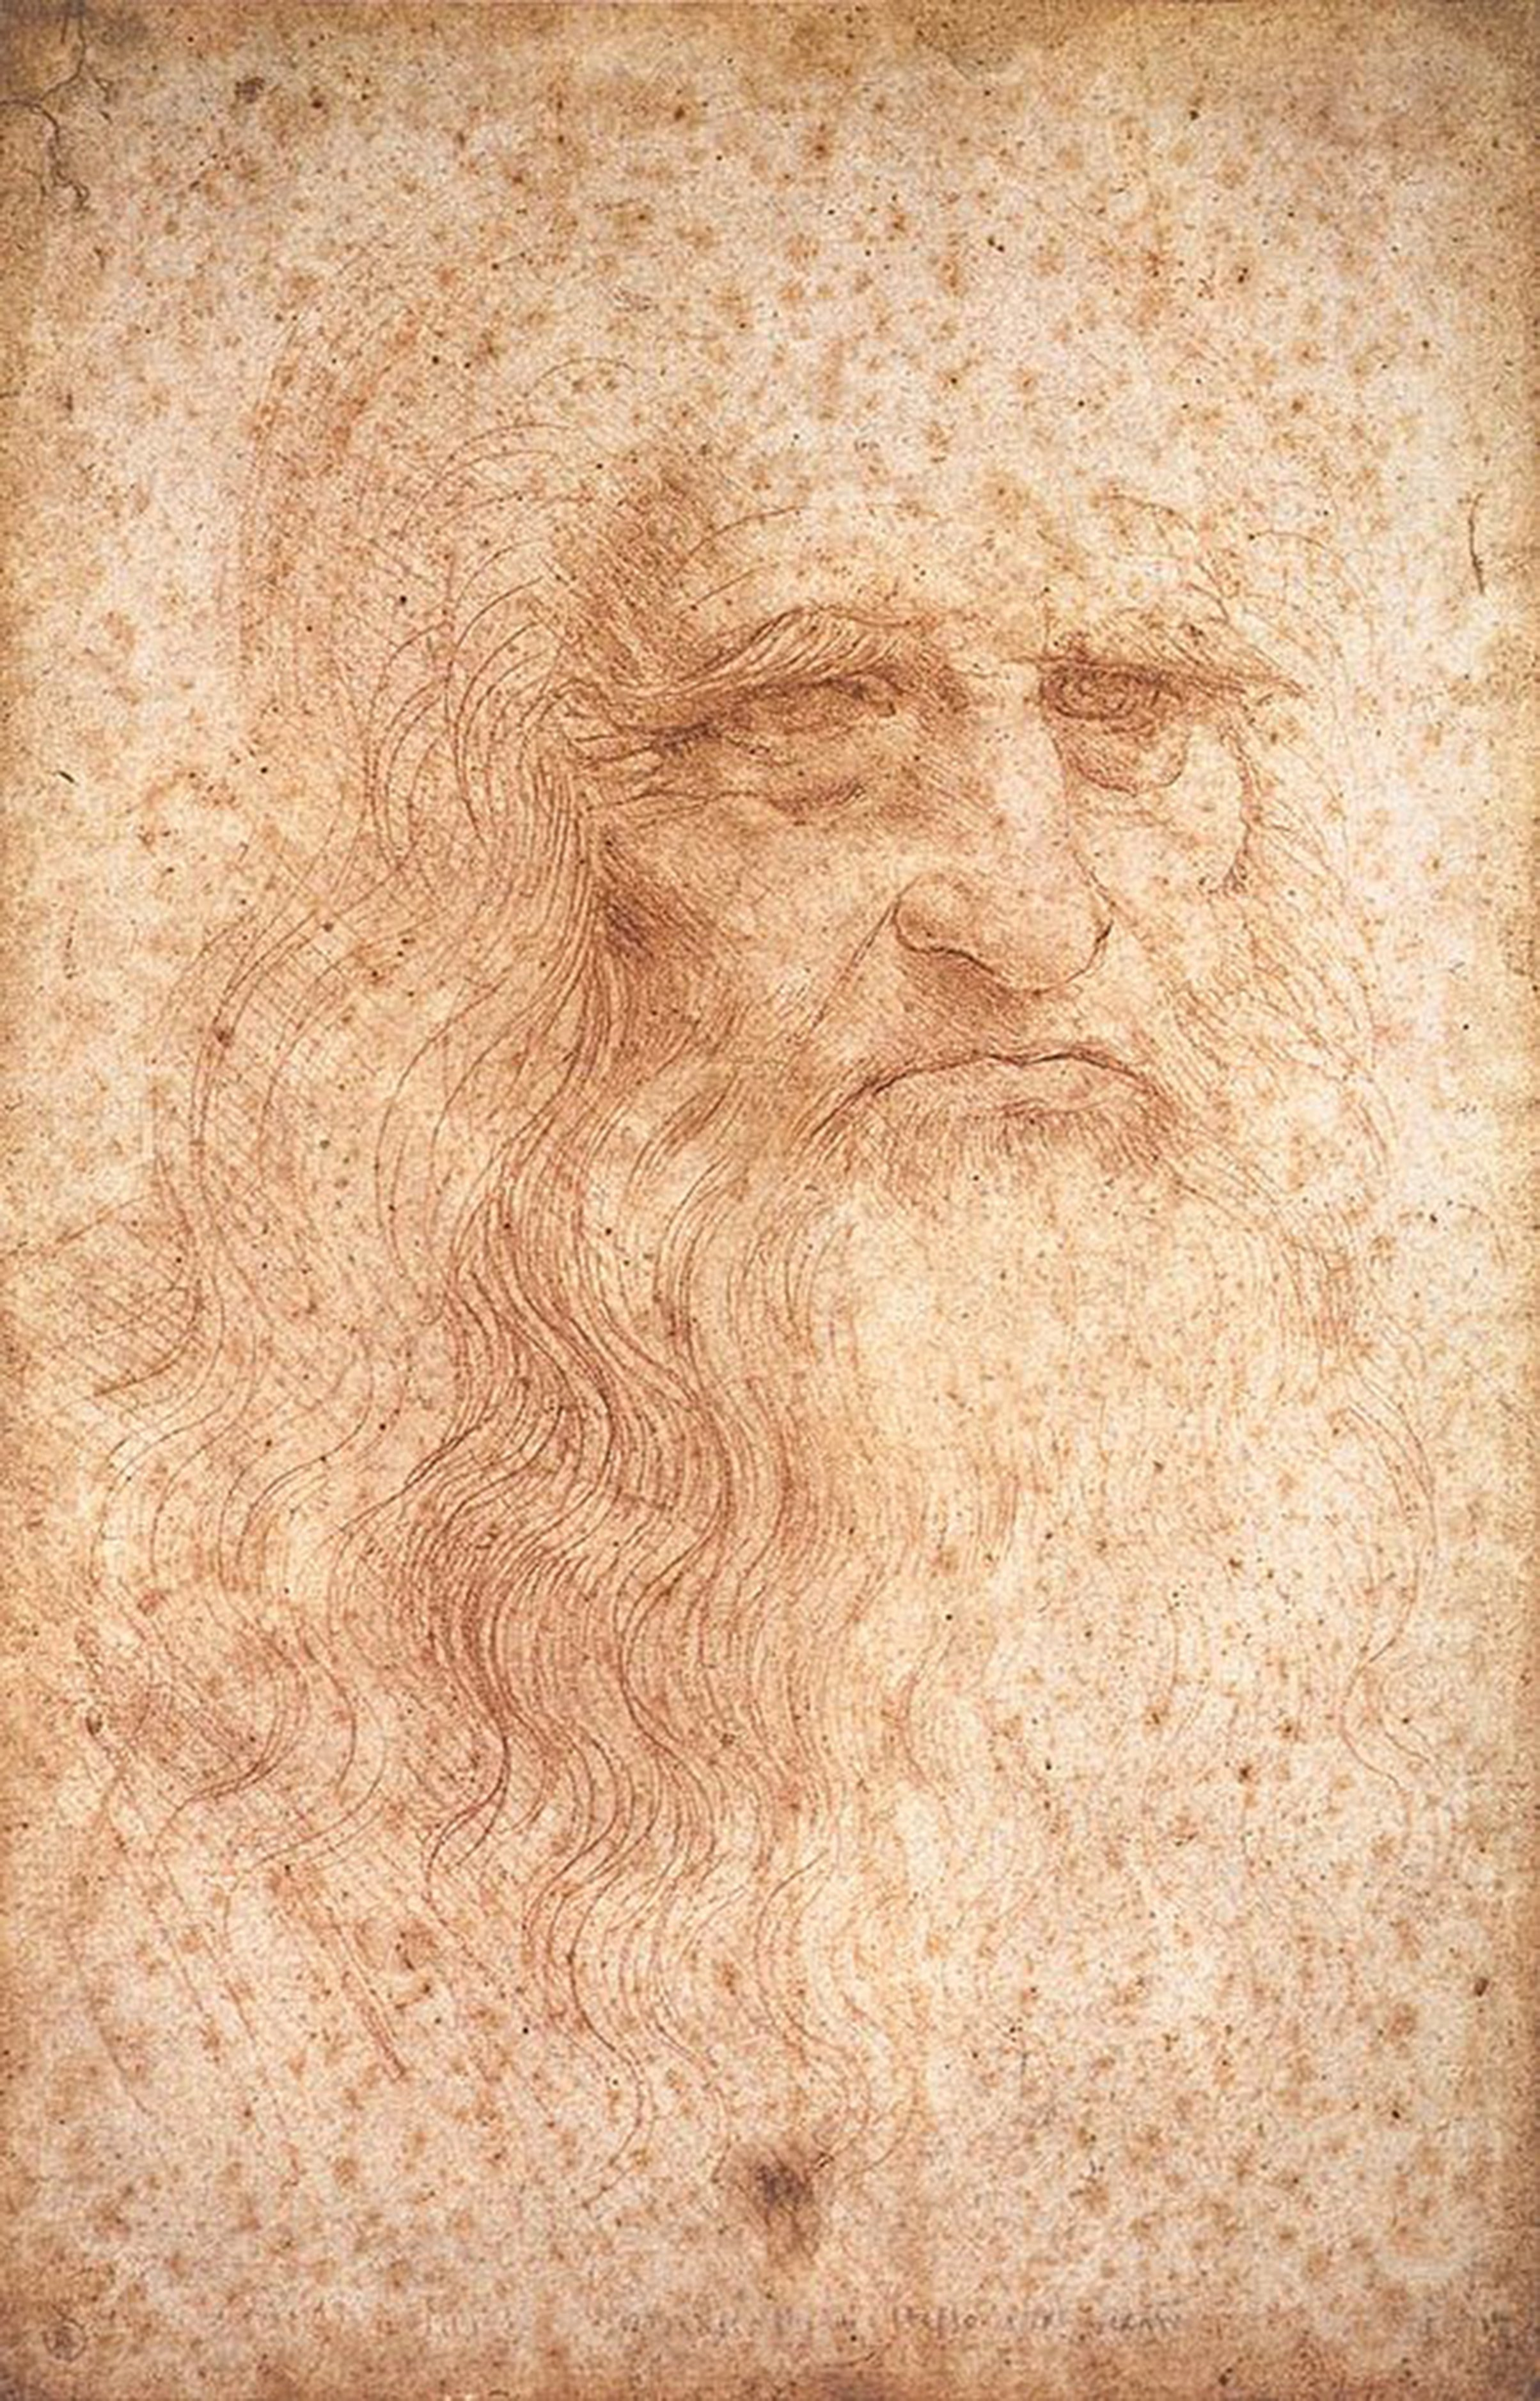 "The red chalk drawing from around 1512, which is in the Biblioteca Reale in Turin, is generally referred to as the ""Self-Portrait of Leonardo da Vinci."" Image via Wikimedia Commons"